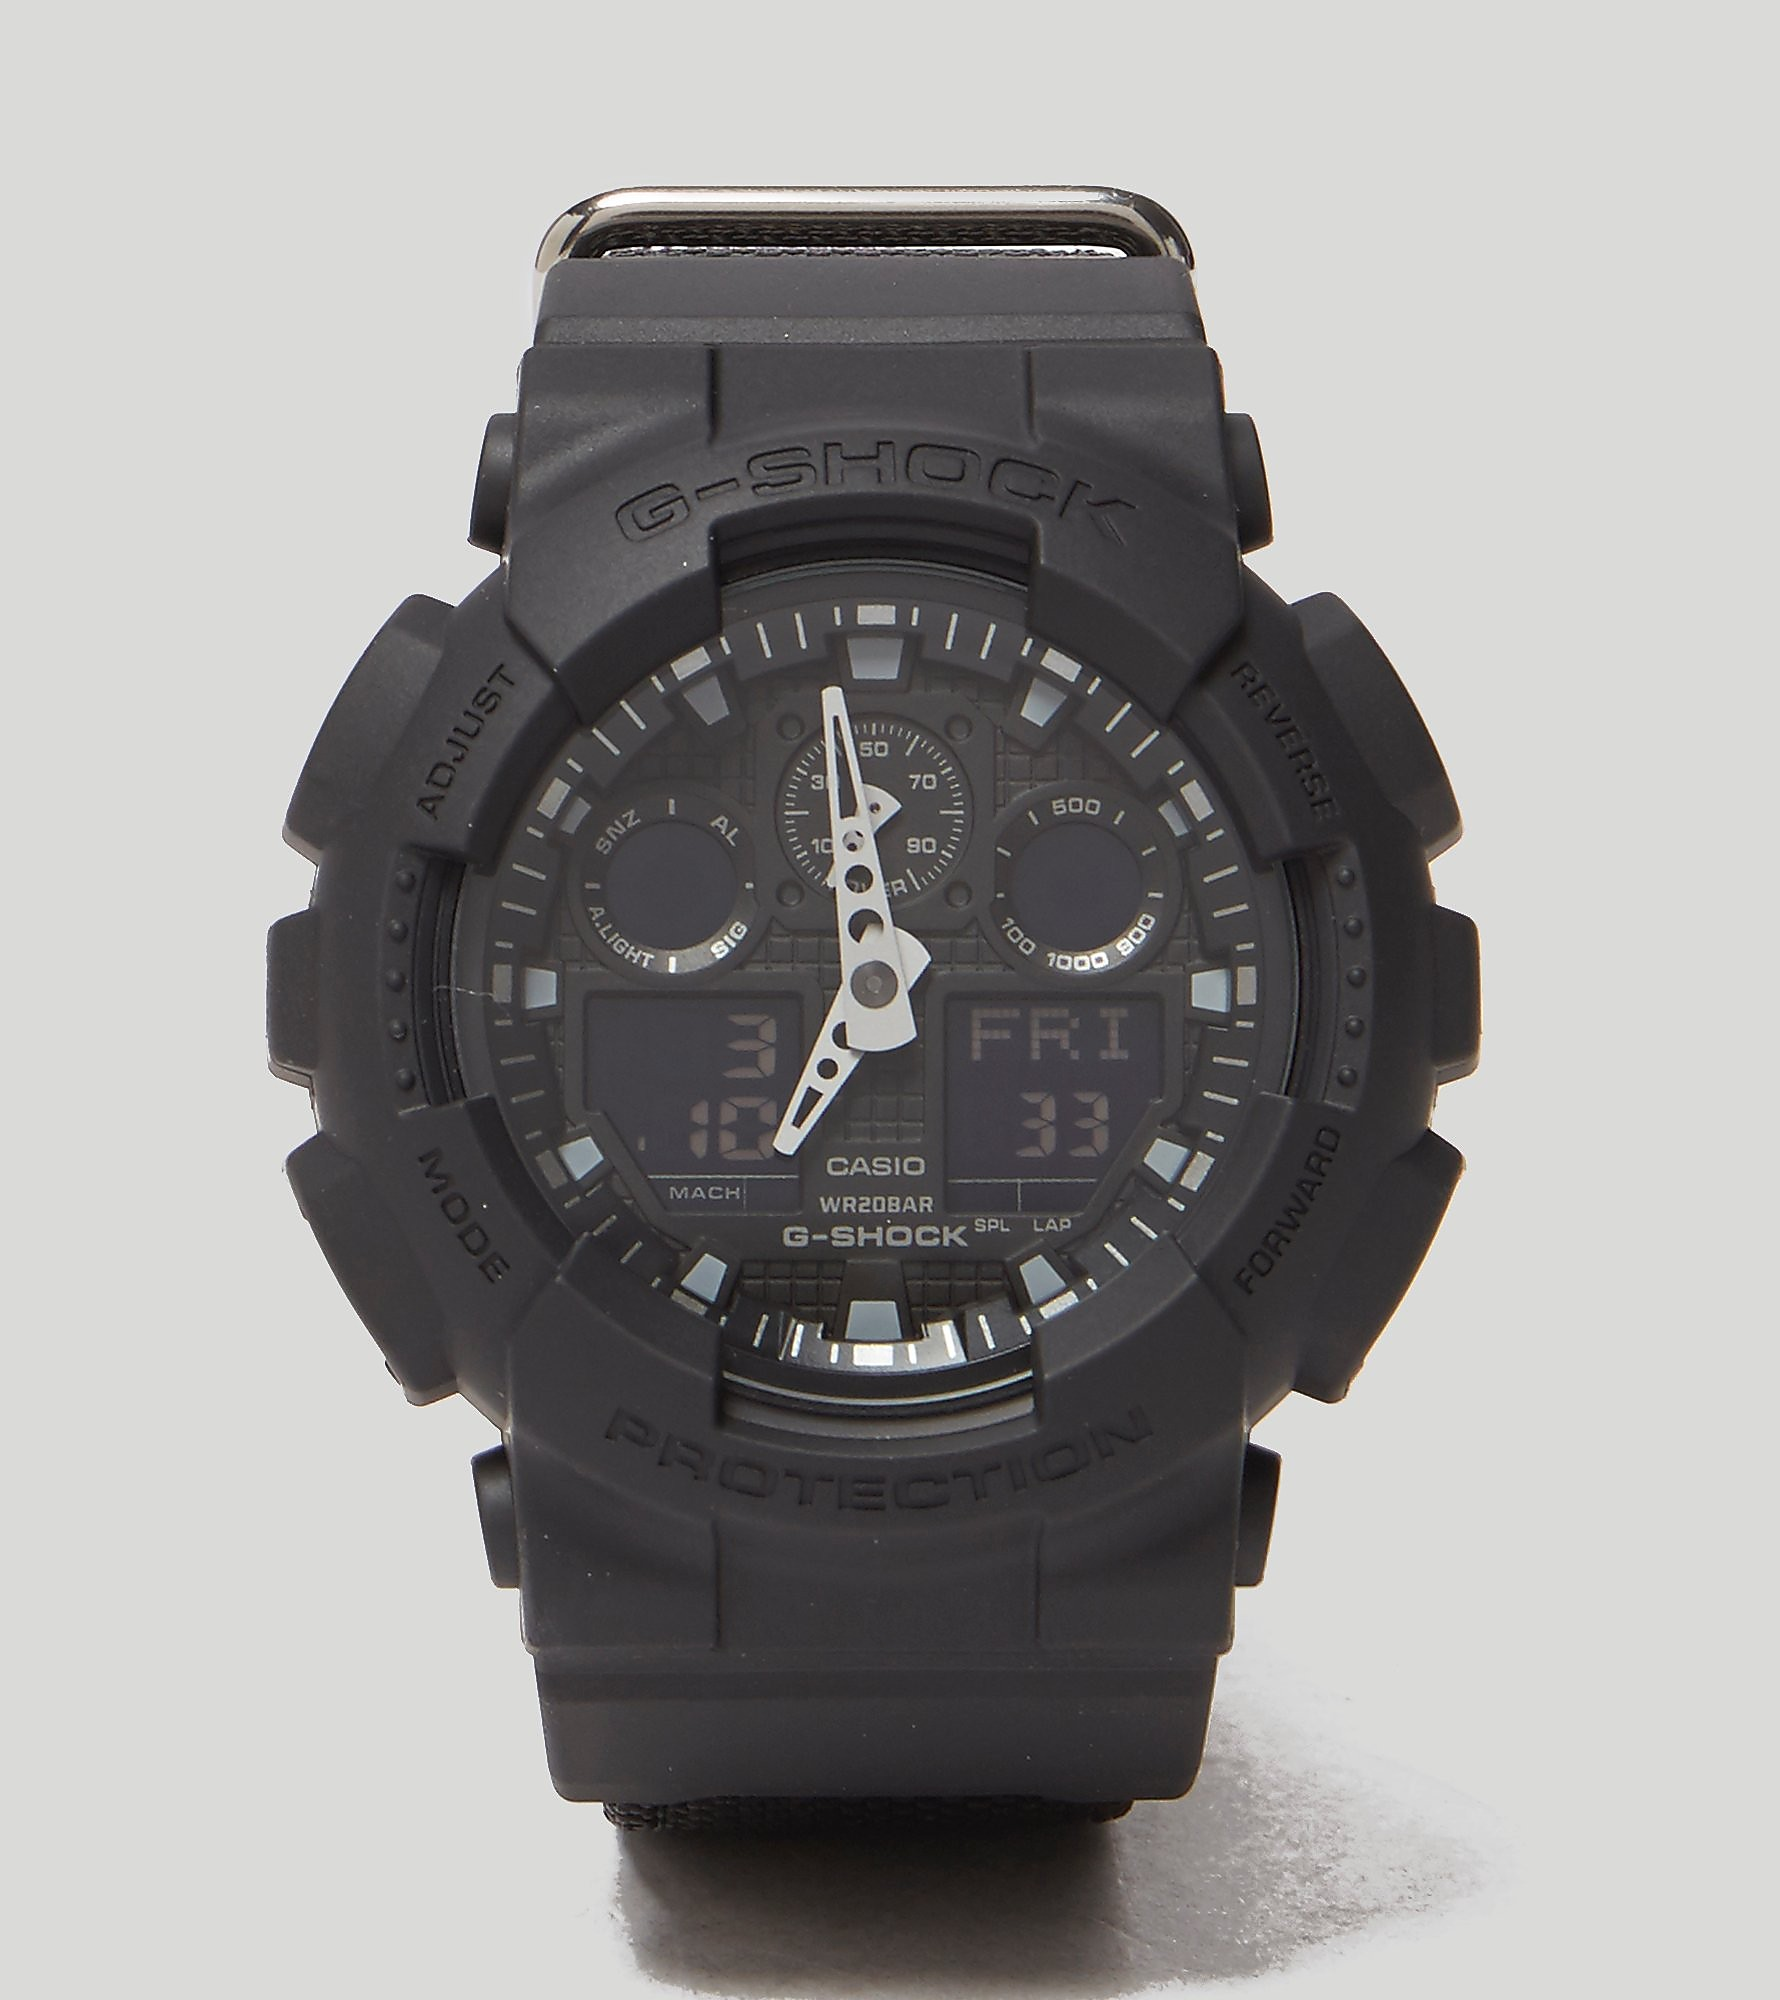 G-Shock GA-100BBN Watch